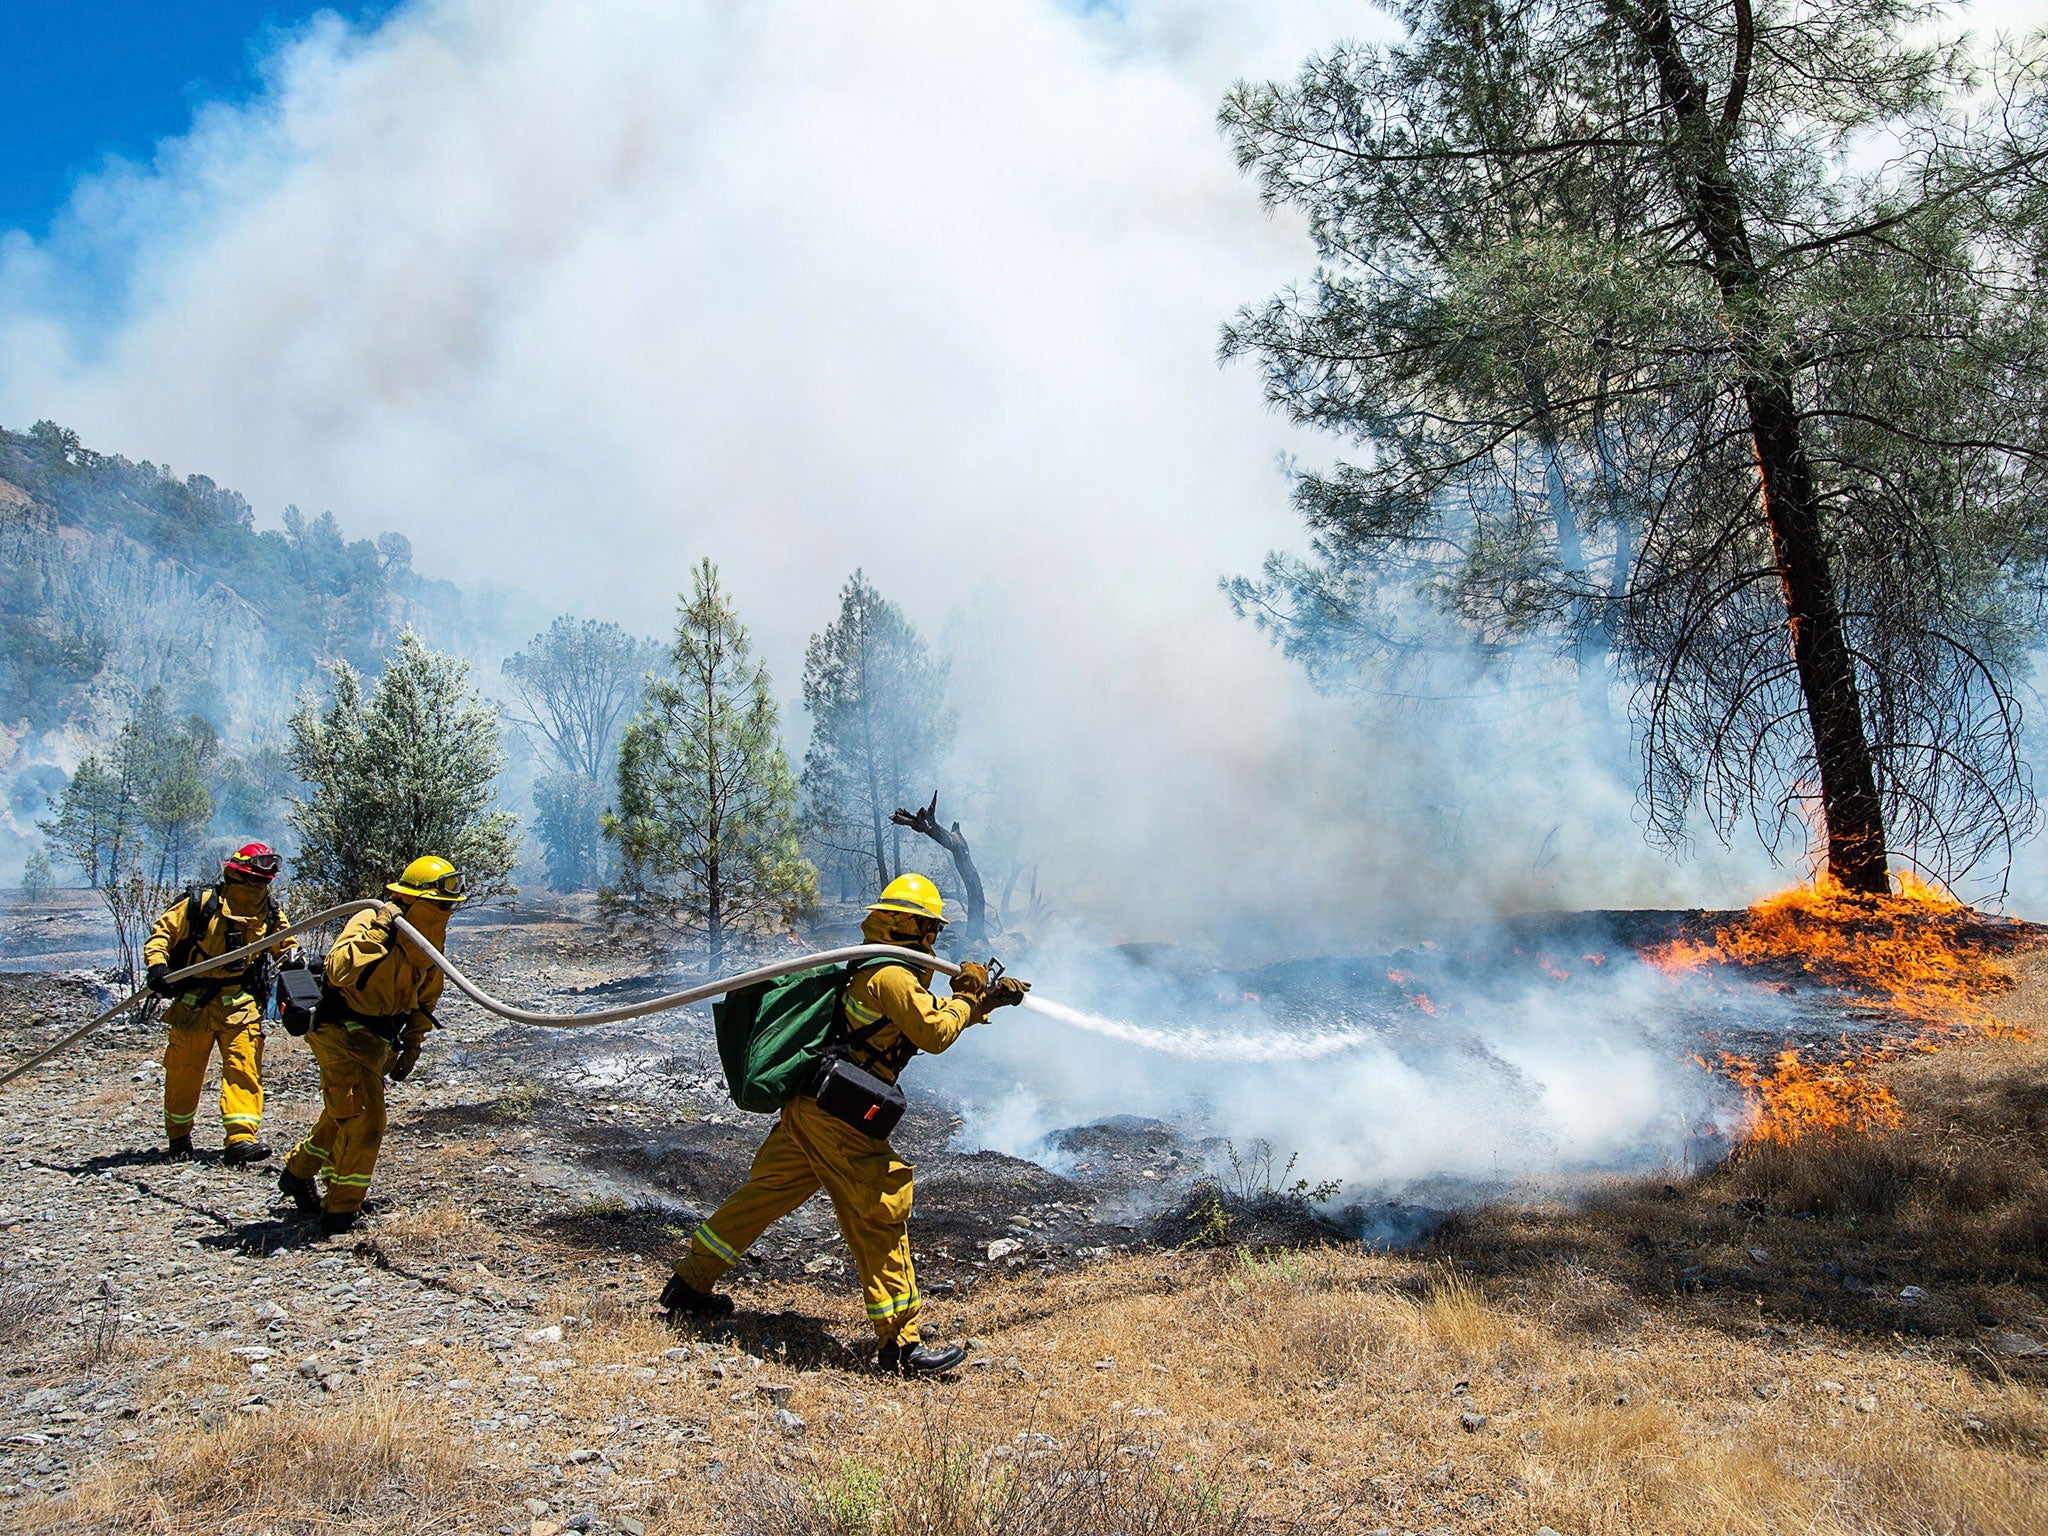 California wildfires trigger state of emergency after devouring over 10,000 acres of land